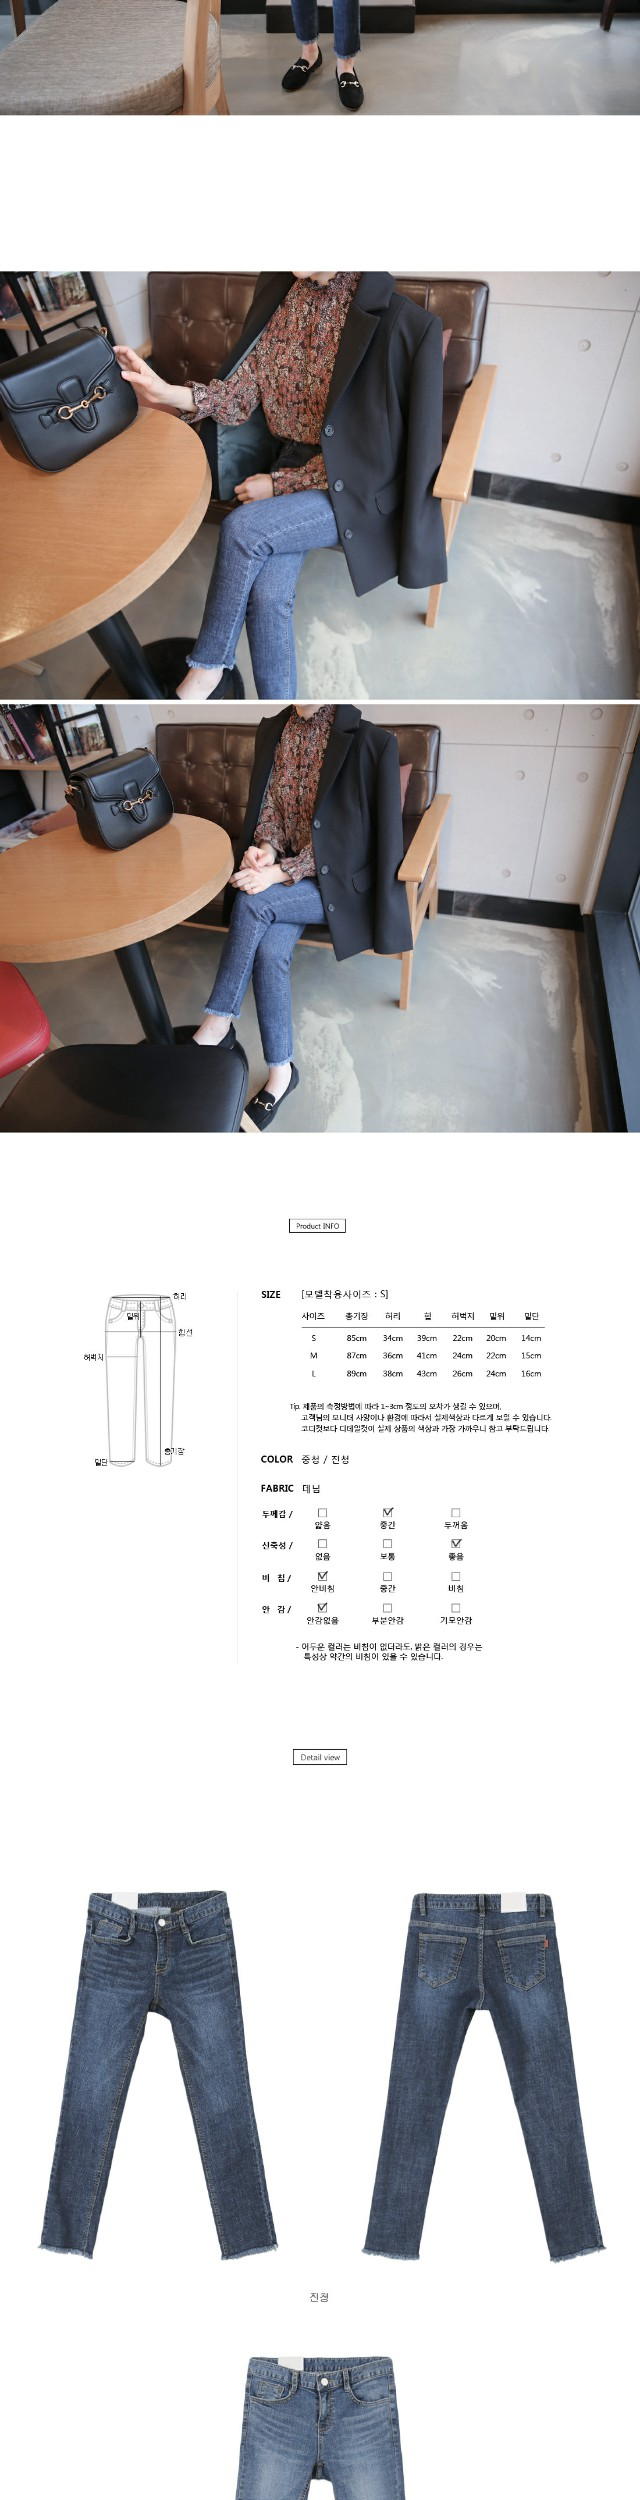 Imperial Date Pants - Jin Jing M ships same day